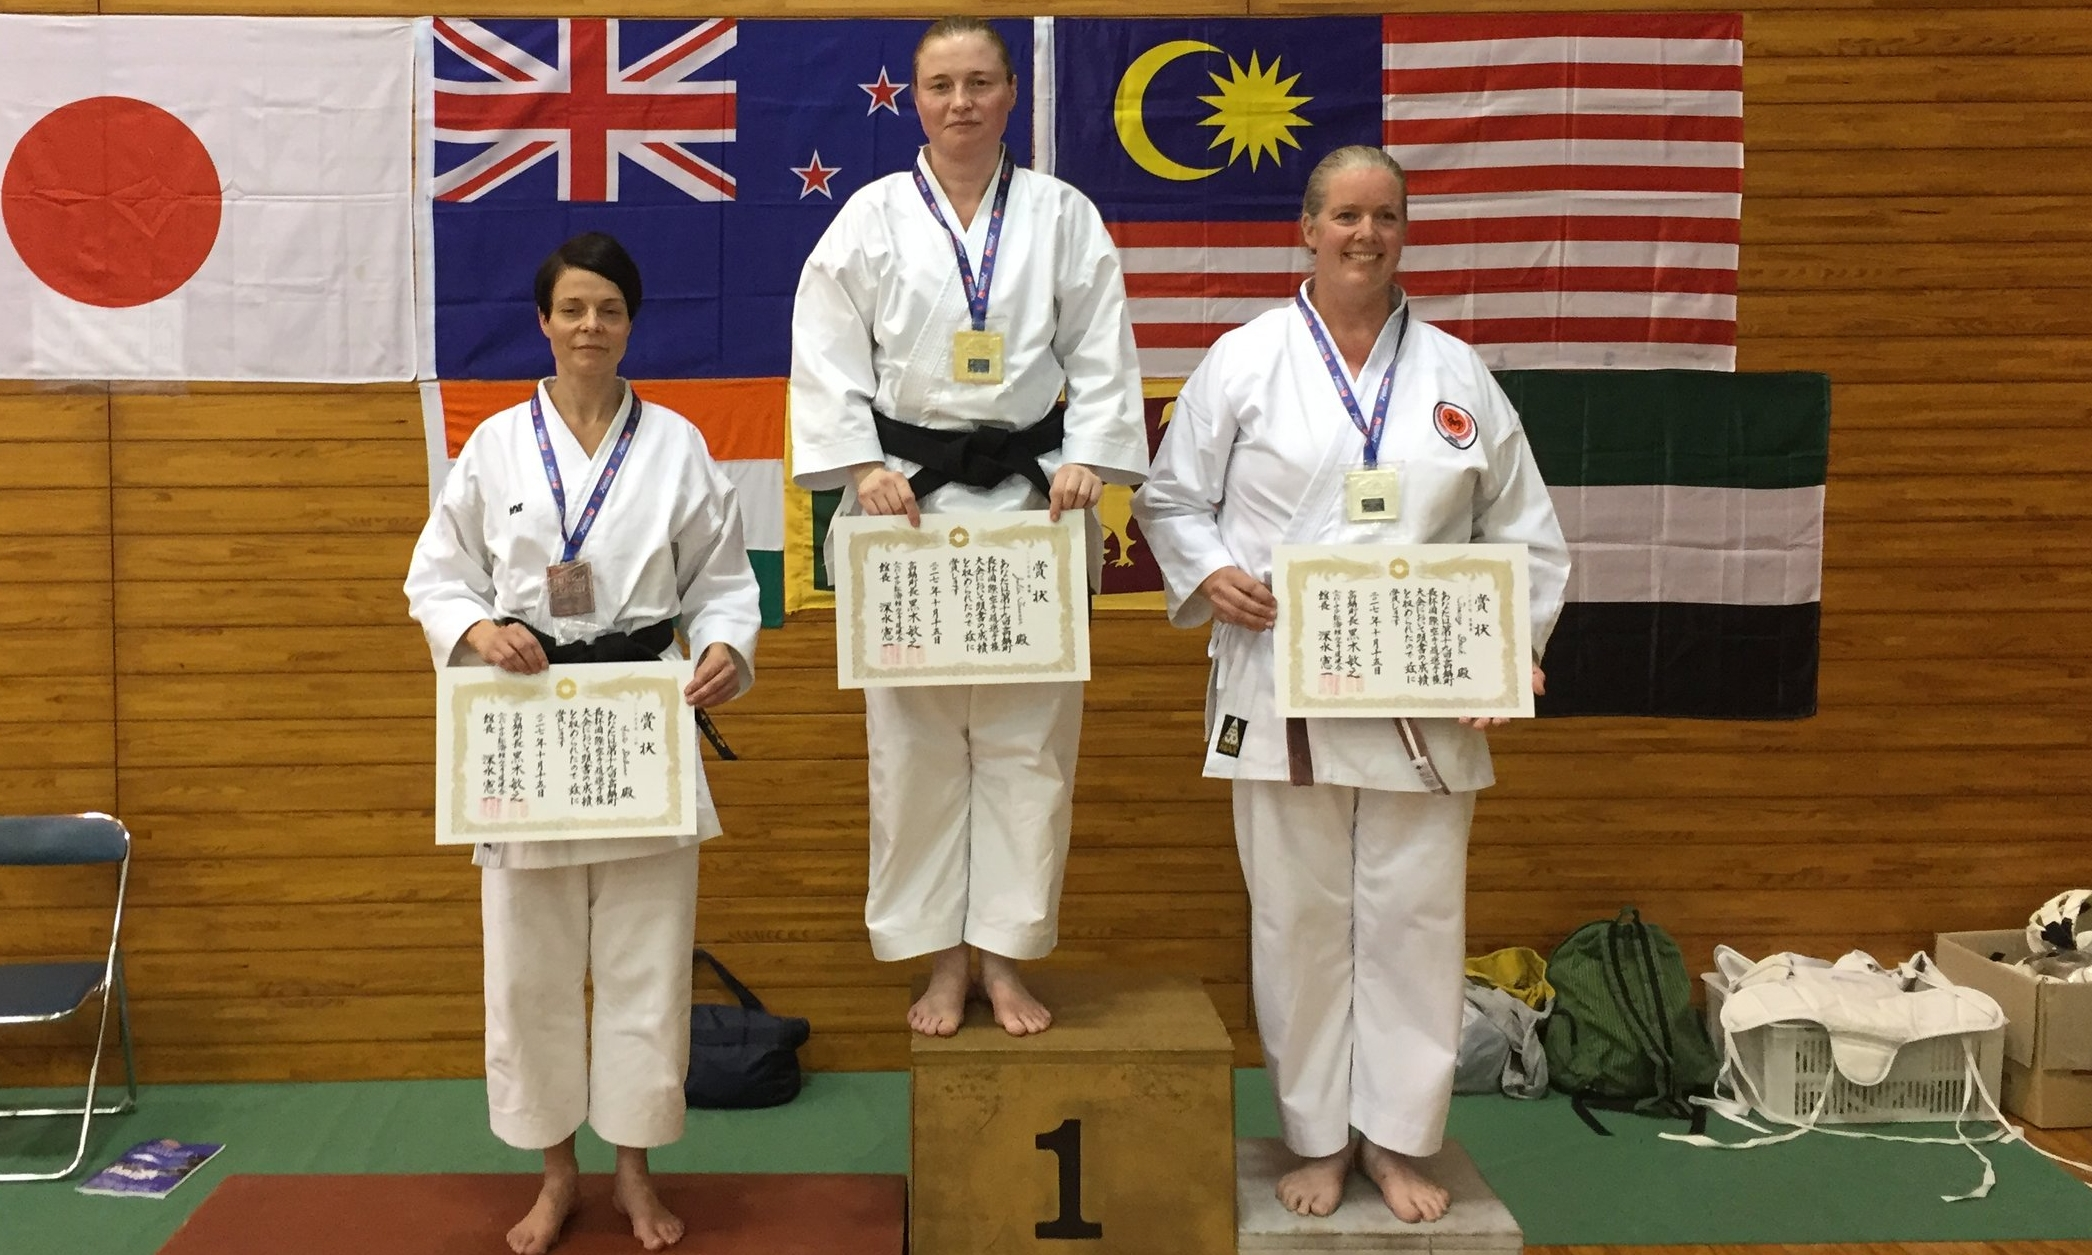 Julia Tanner claims gold at the 2017 International Karate Championships in Japan